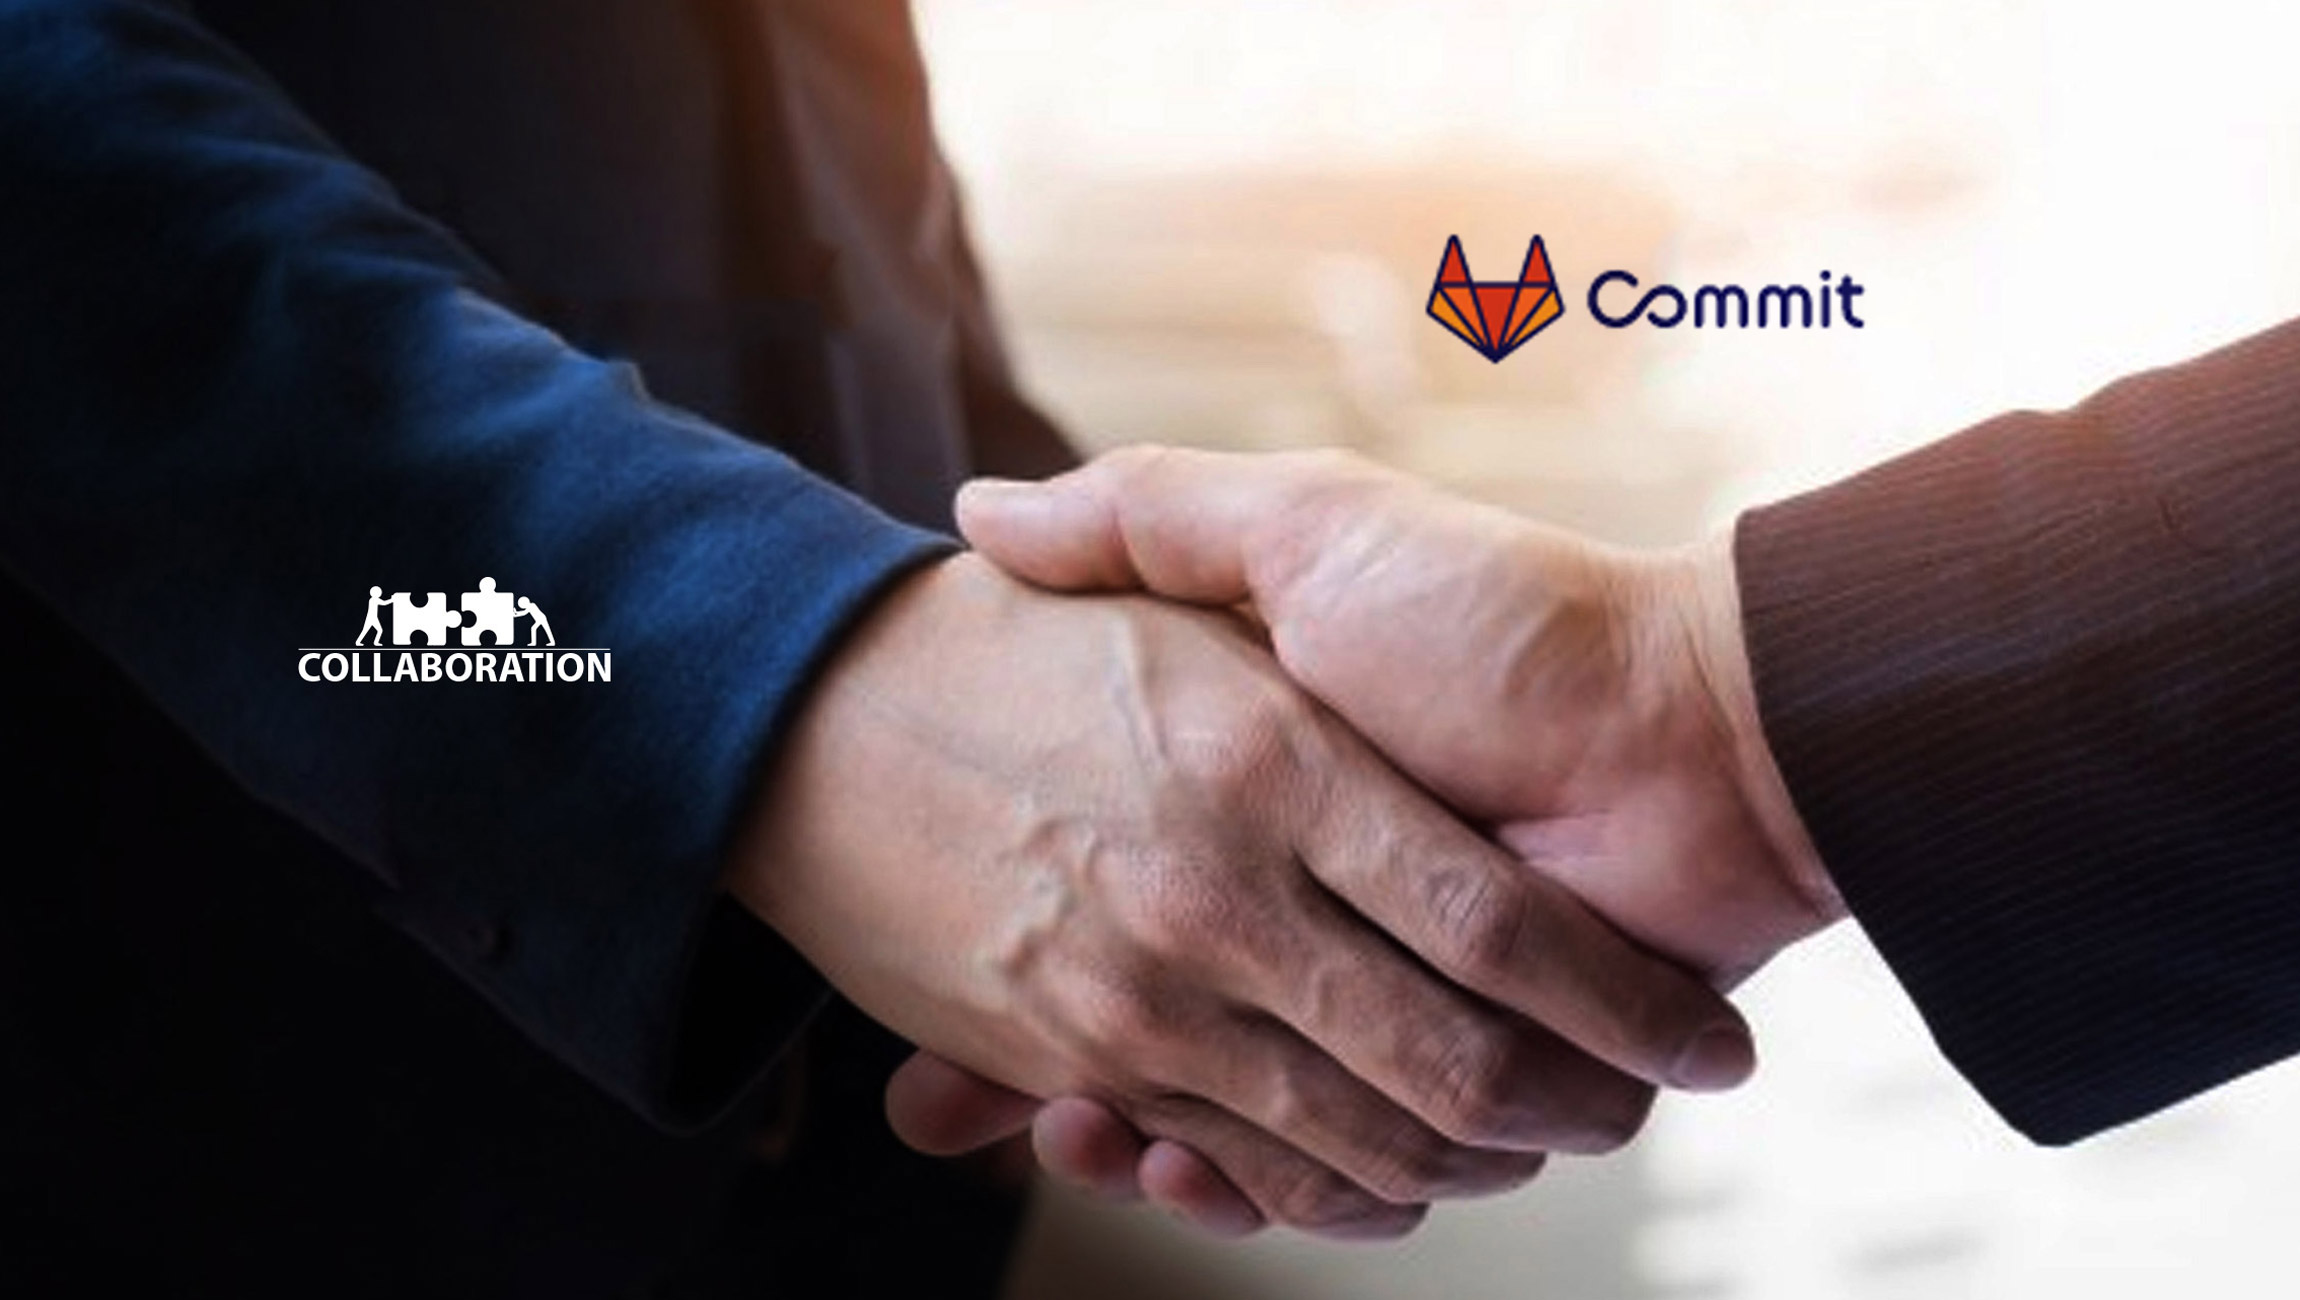 GitLab Grows Its Global Partner Ecosystem by Over 175 Partners to Deliver Customers a Seamless DevOps Experience